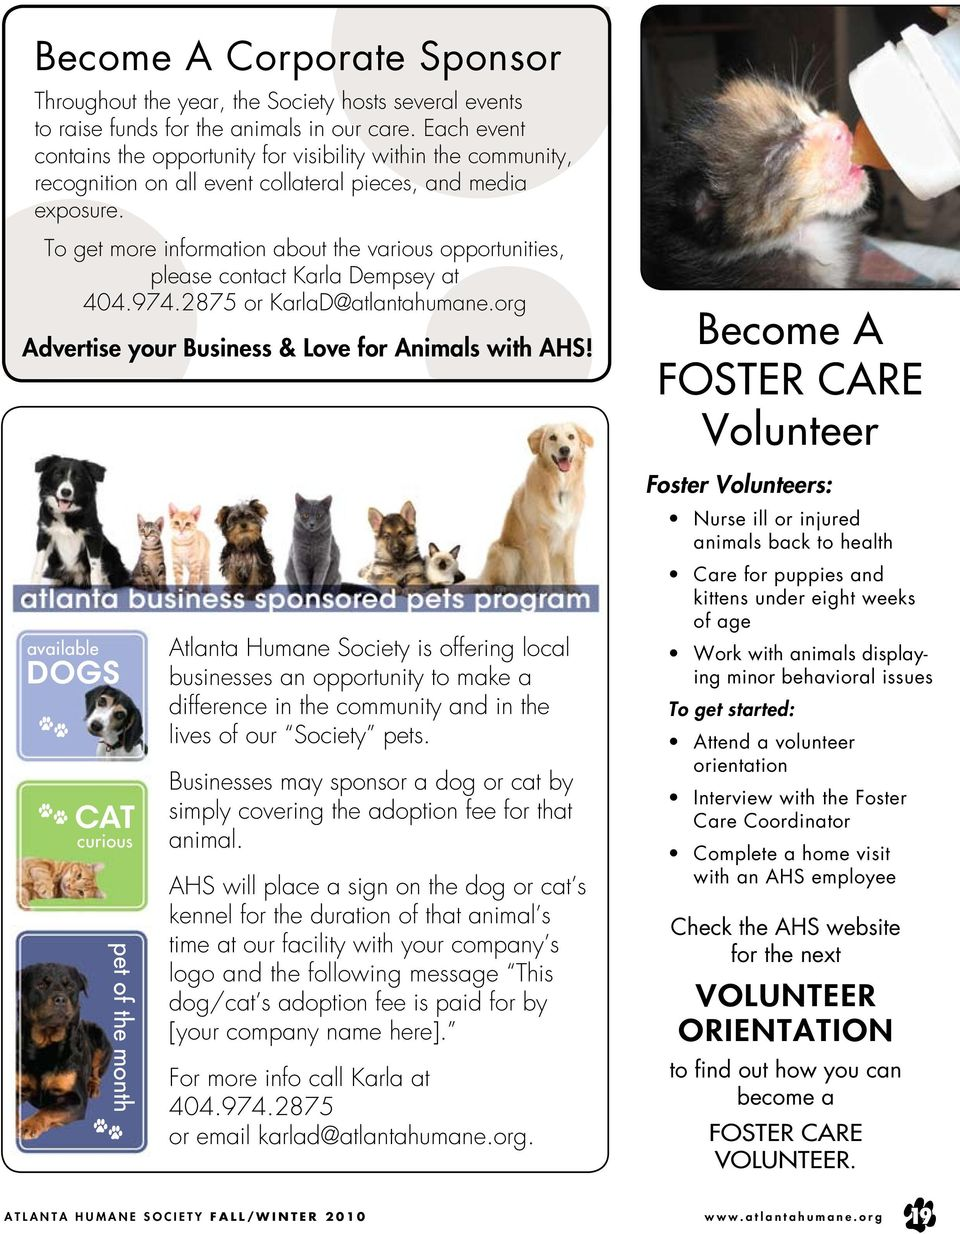 To get more information about the various opportunities, please contact Karla Dempsey at 404.974.2875 or KarlaD@atlantahumane.org Advertise your Business & Love for Animals with AHS!